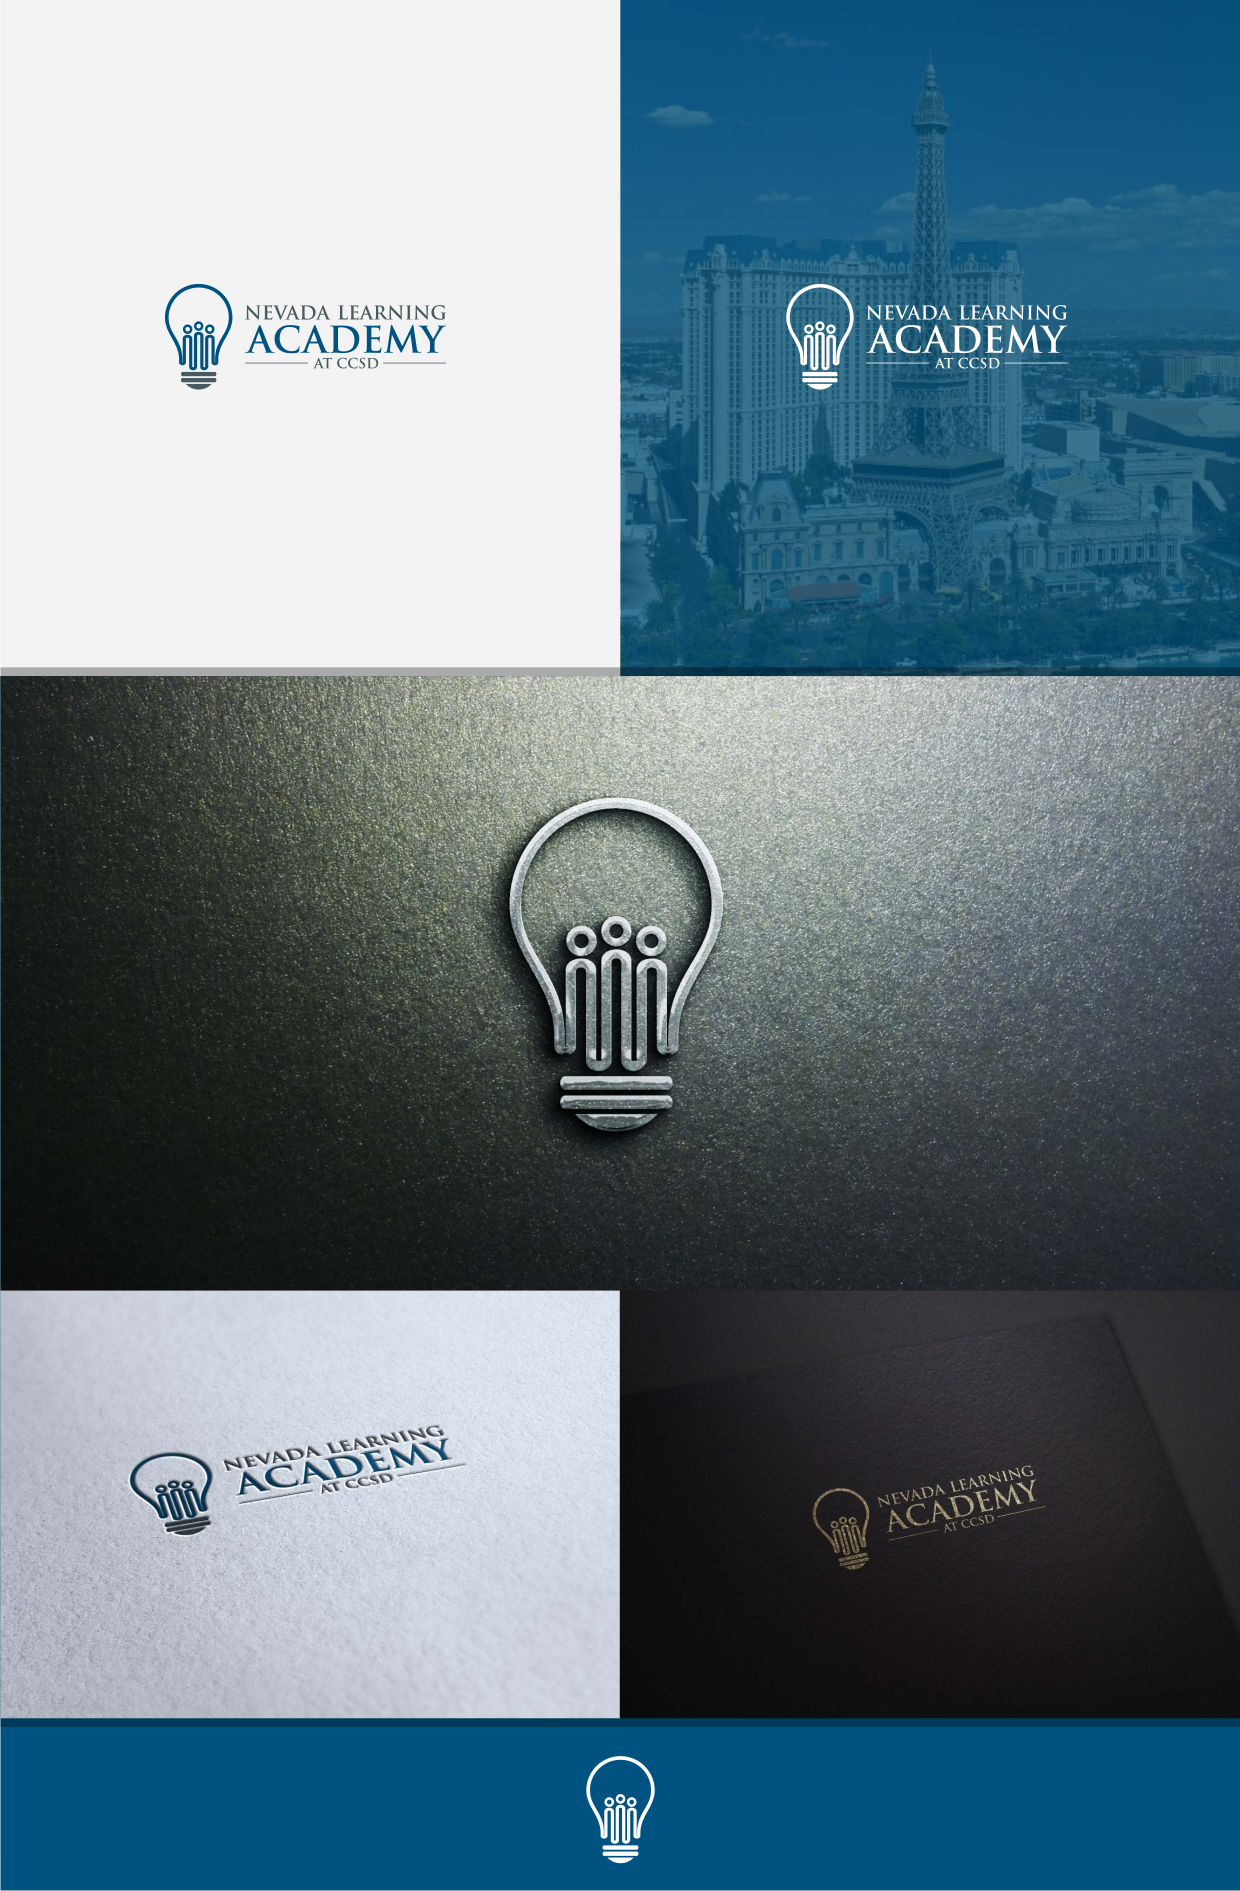 Logo for an online middle and high school academy (will provide fast, constructive feedback)